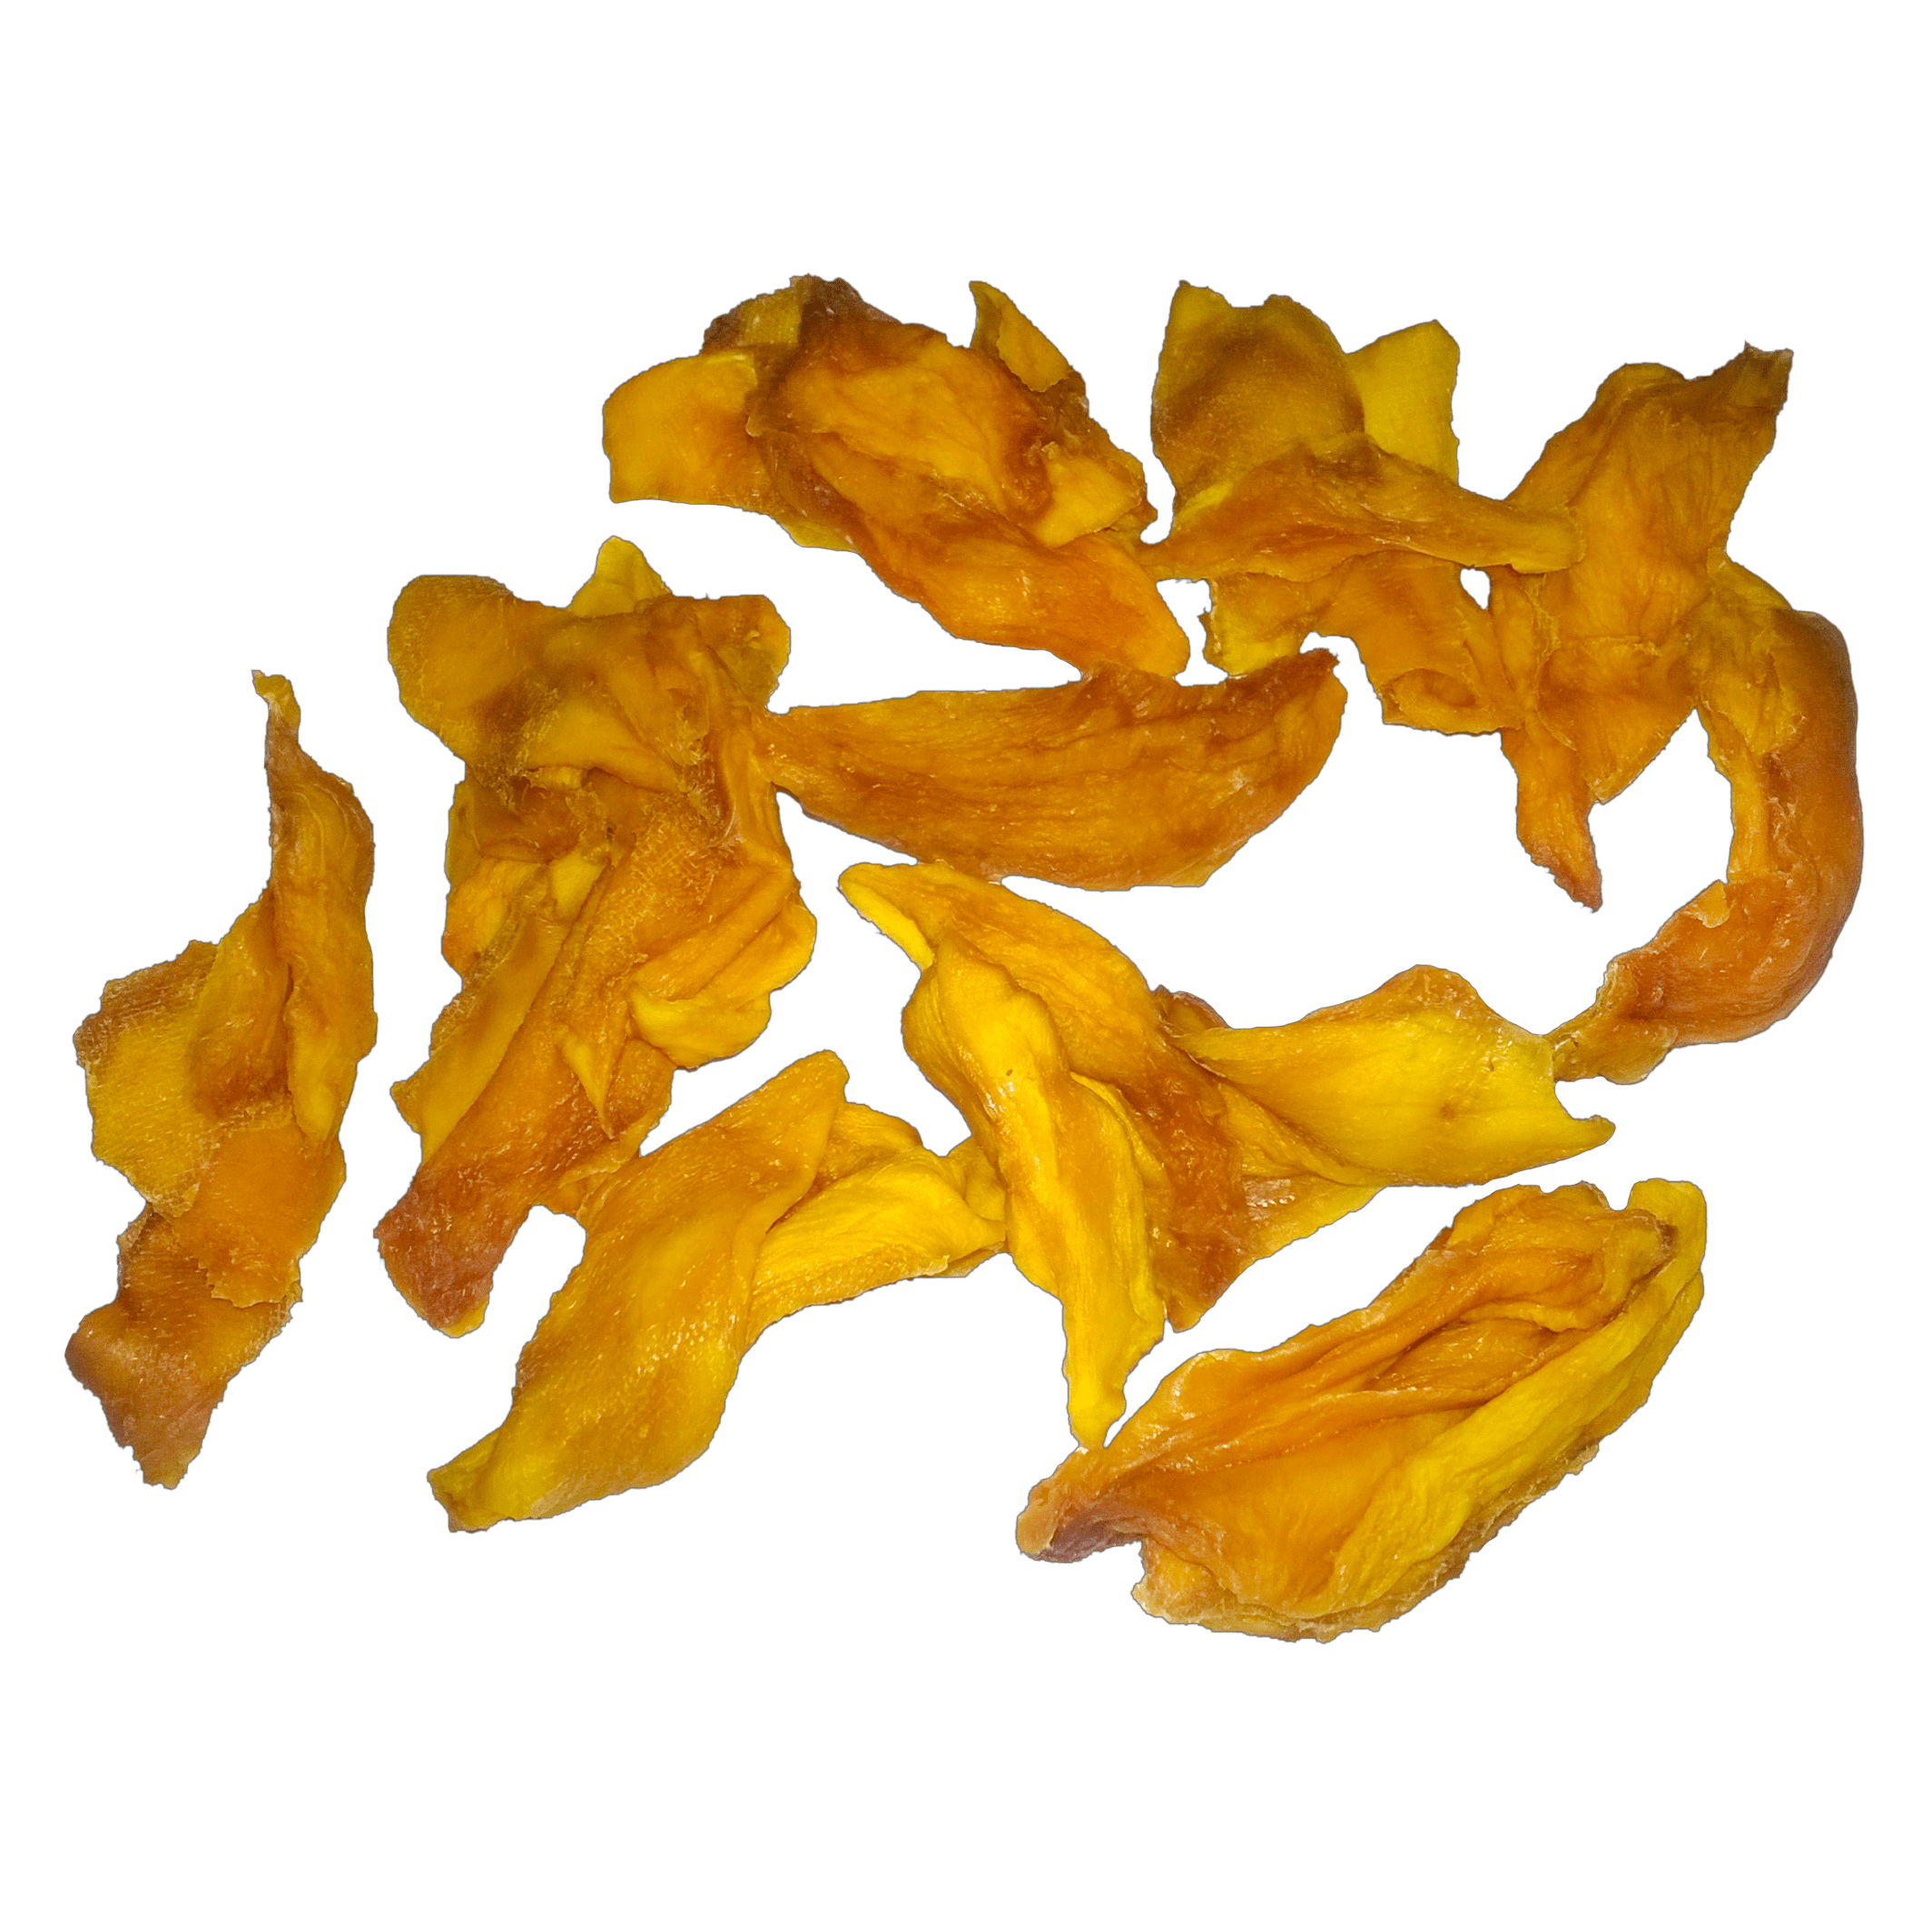 Organic Mango Strips without bag